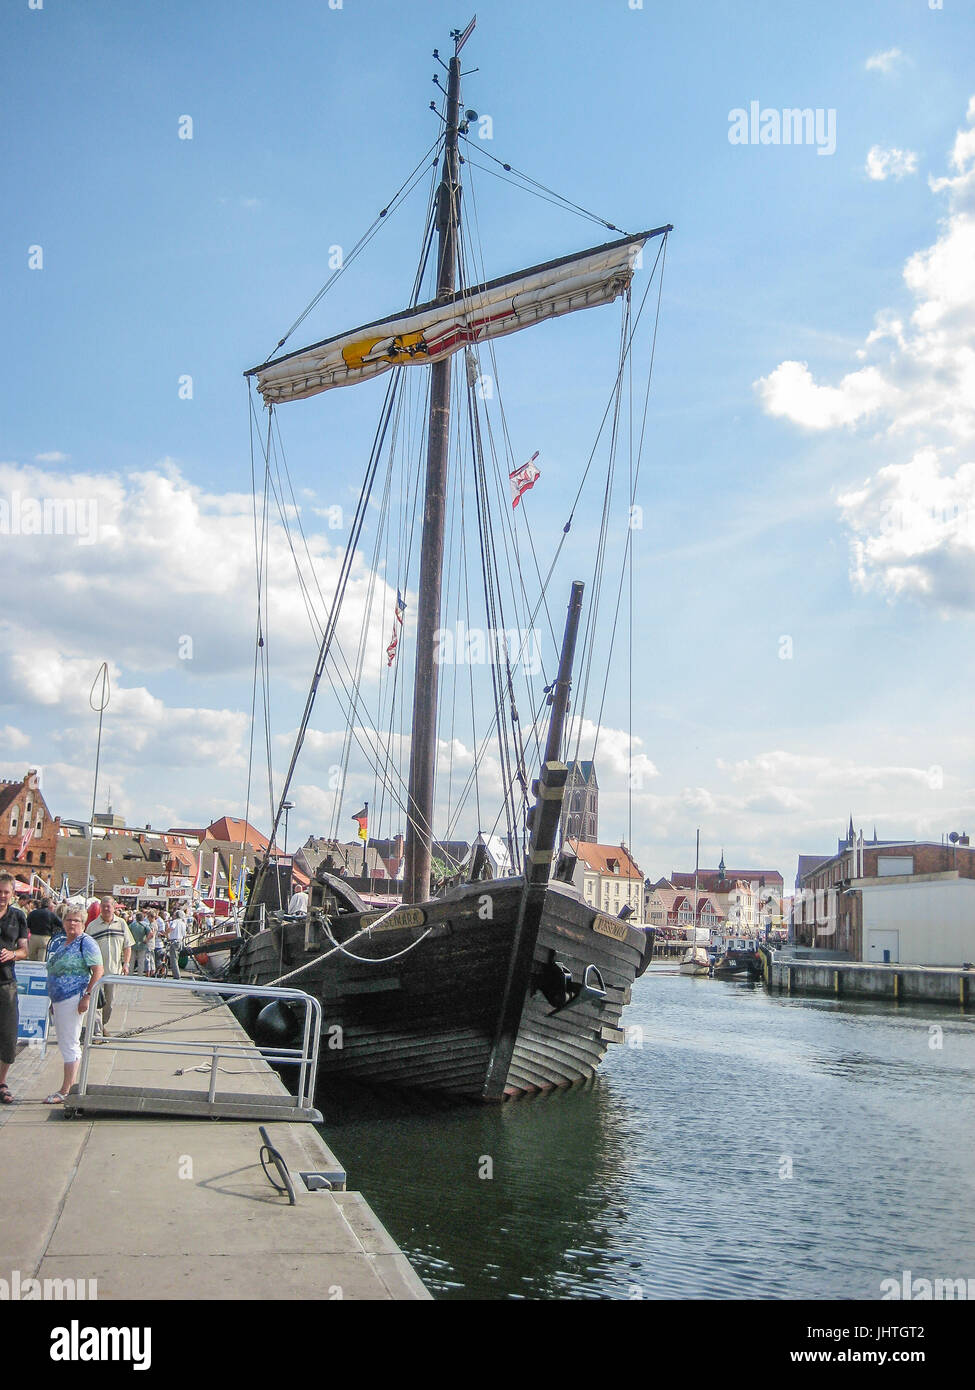 A replika of a medieval ship in Wismar Germany - Stock Image